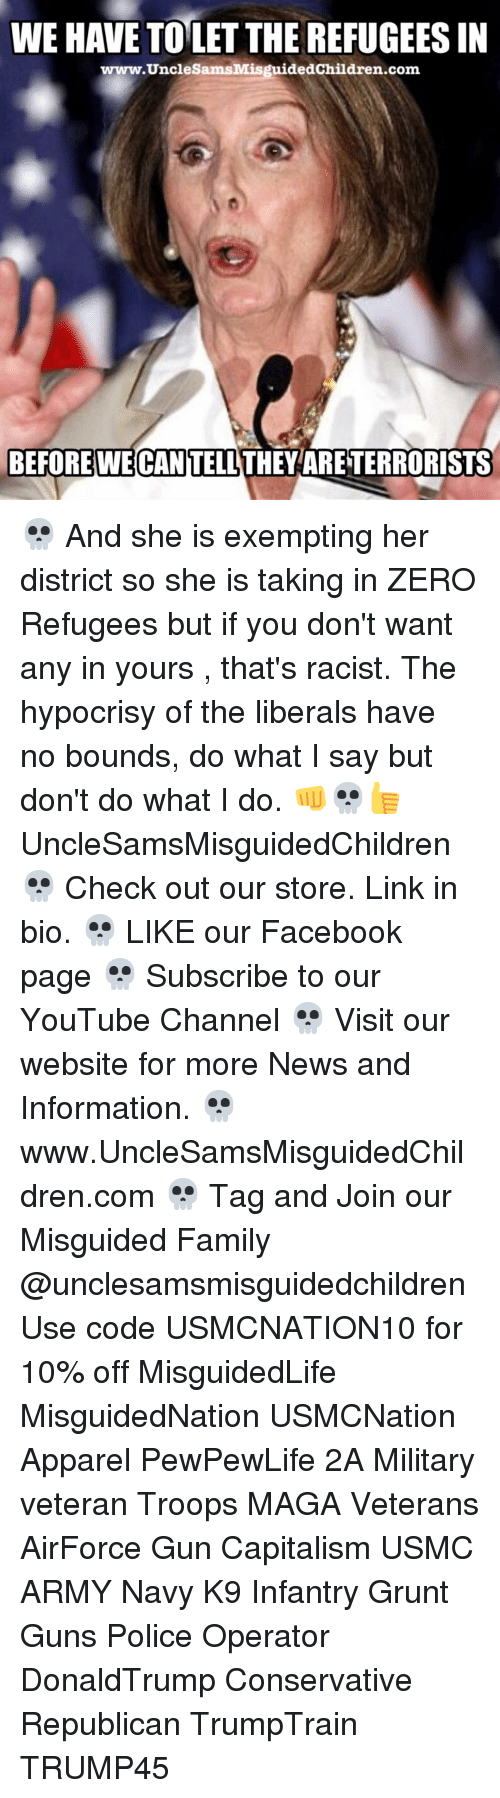 thats racist: WE HAVE TOLET THE REFUGEES IN  www.UncleSamsMisguidedChildren.com  BEFORE CAN TELL THEY ARETERRORISTS 💀 And she is exempting her district so she is taking in ZERO Refugees but if you don't want any in yours , that's racist. The hypocrisy of the liberals have no bounds, do what I say but don't do what I do. 👊💀👍 UncleSamsMisguidedChildren 💀 Check out our store. Link in bio. 💀 LIKE our Facebook page 💀 Subscribe to our YouTube Channel 💀 Visit our website for more News and Information. 💀 www.UncleSamsMisguidedChildren.com 💀 Tag and Join our Misguided Family @unclesamsmisguidedchildren Use code USMCNATION10 for 10% off MisguidedLife MisguidedNation USMCNation Apparel PewPewLife 2A Military veteran Troops MAGA Veterans AirForce Gun Capitalism USMC ARMY Navy K9 Infantry Grunt Guns Police Operator DonaldTrump Conservative Republican TrumpTrain TRUMP45